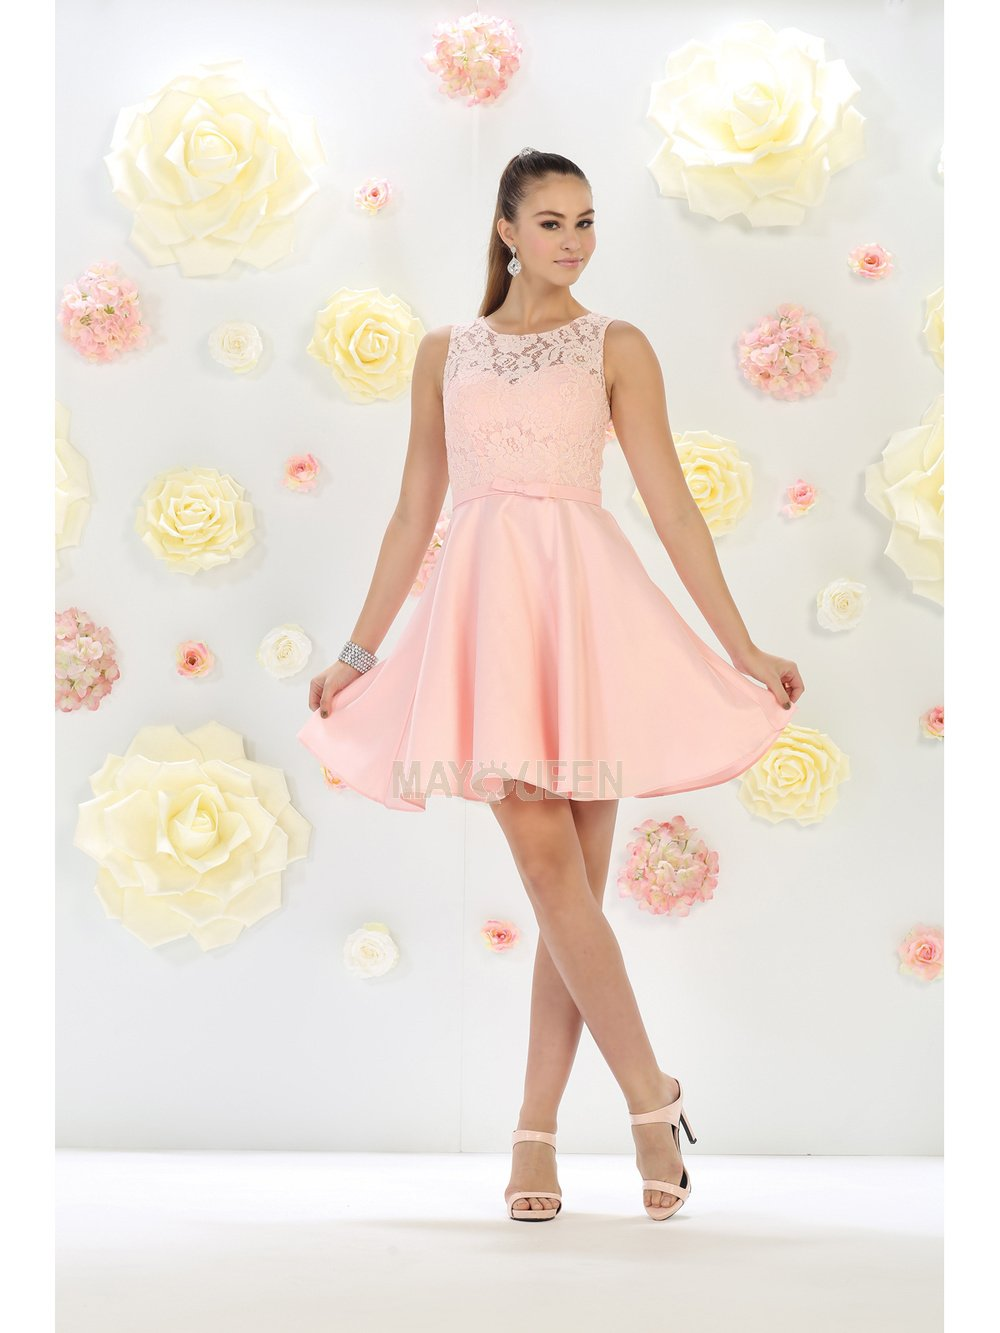 Blush Lace Top Homecoming Dress With Satin Skirt